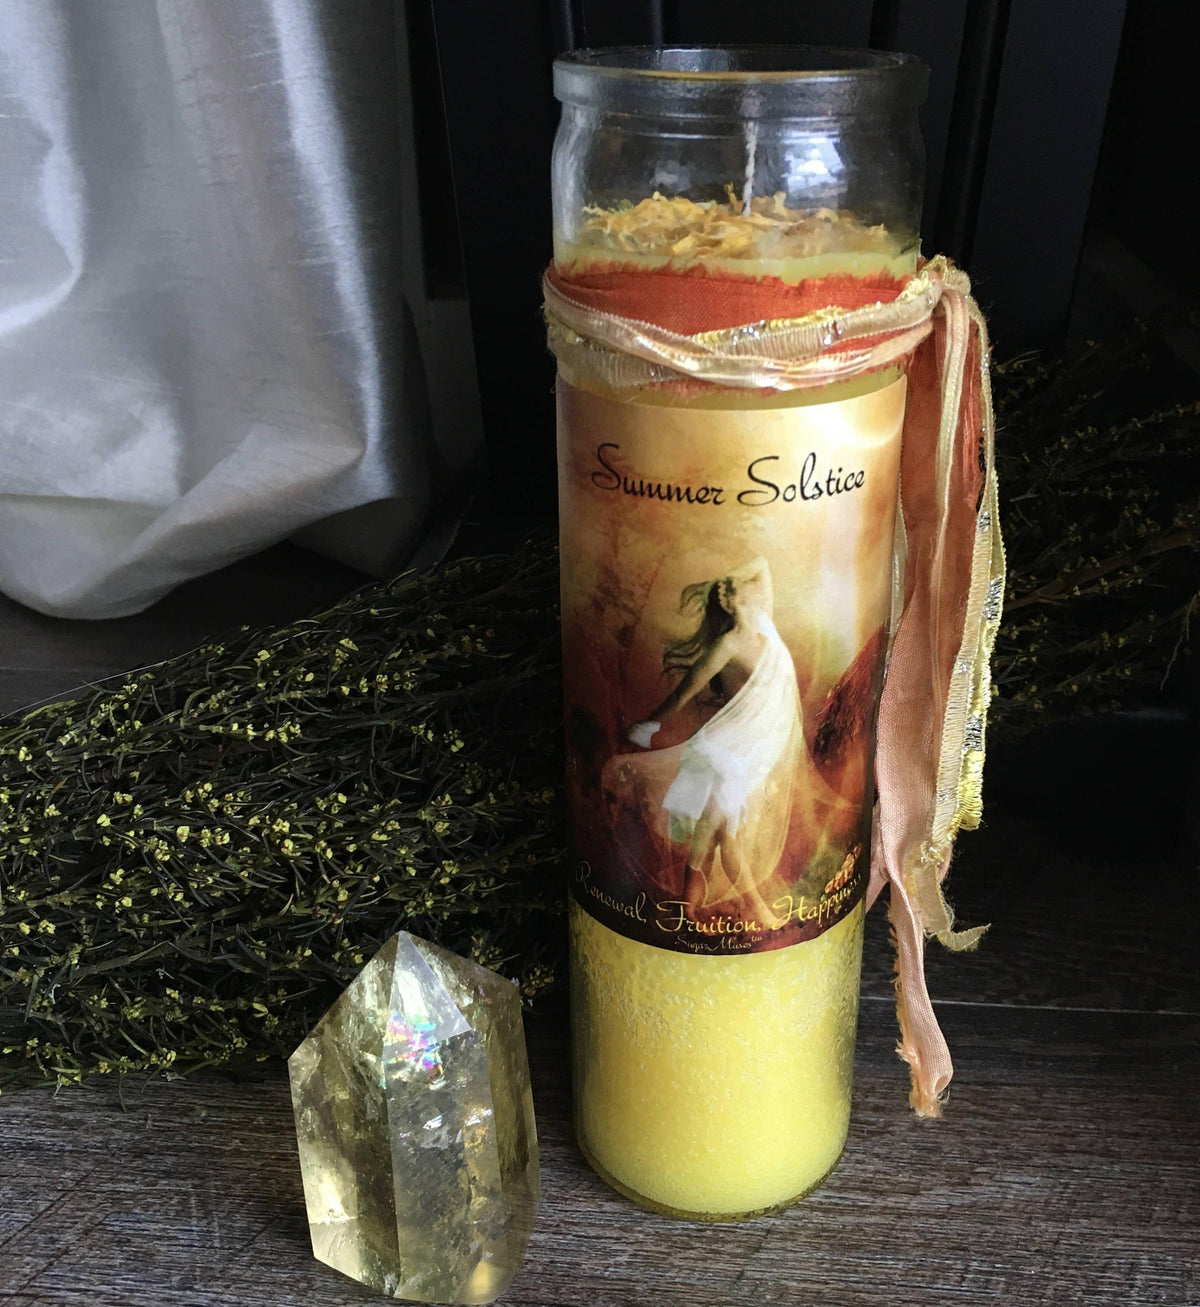 Del Sol - Summer Solstice Candle, Candles - SugarMuses